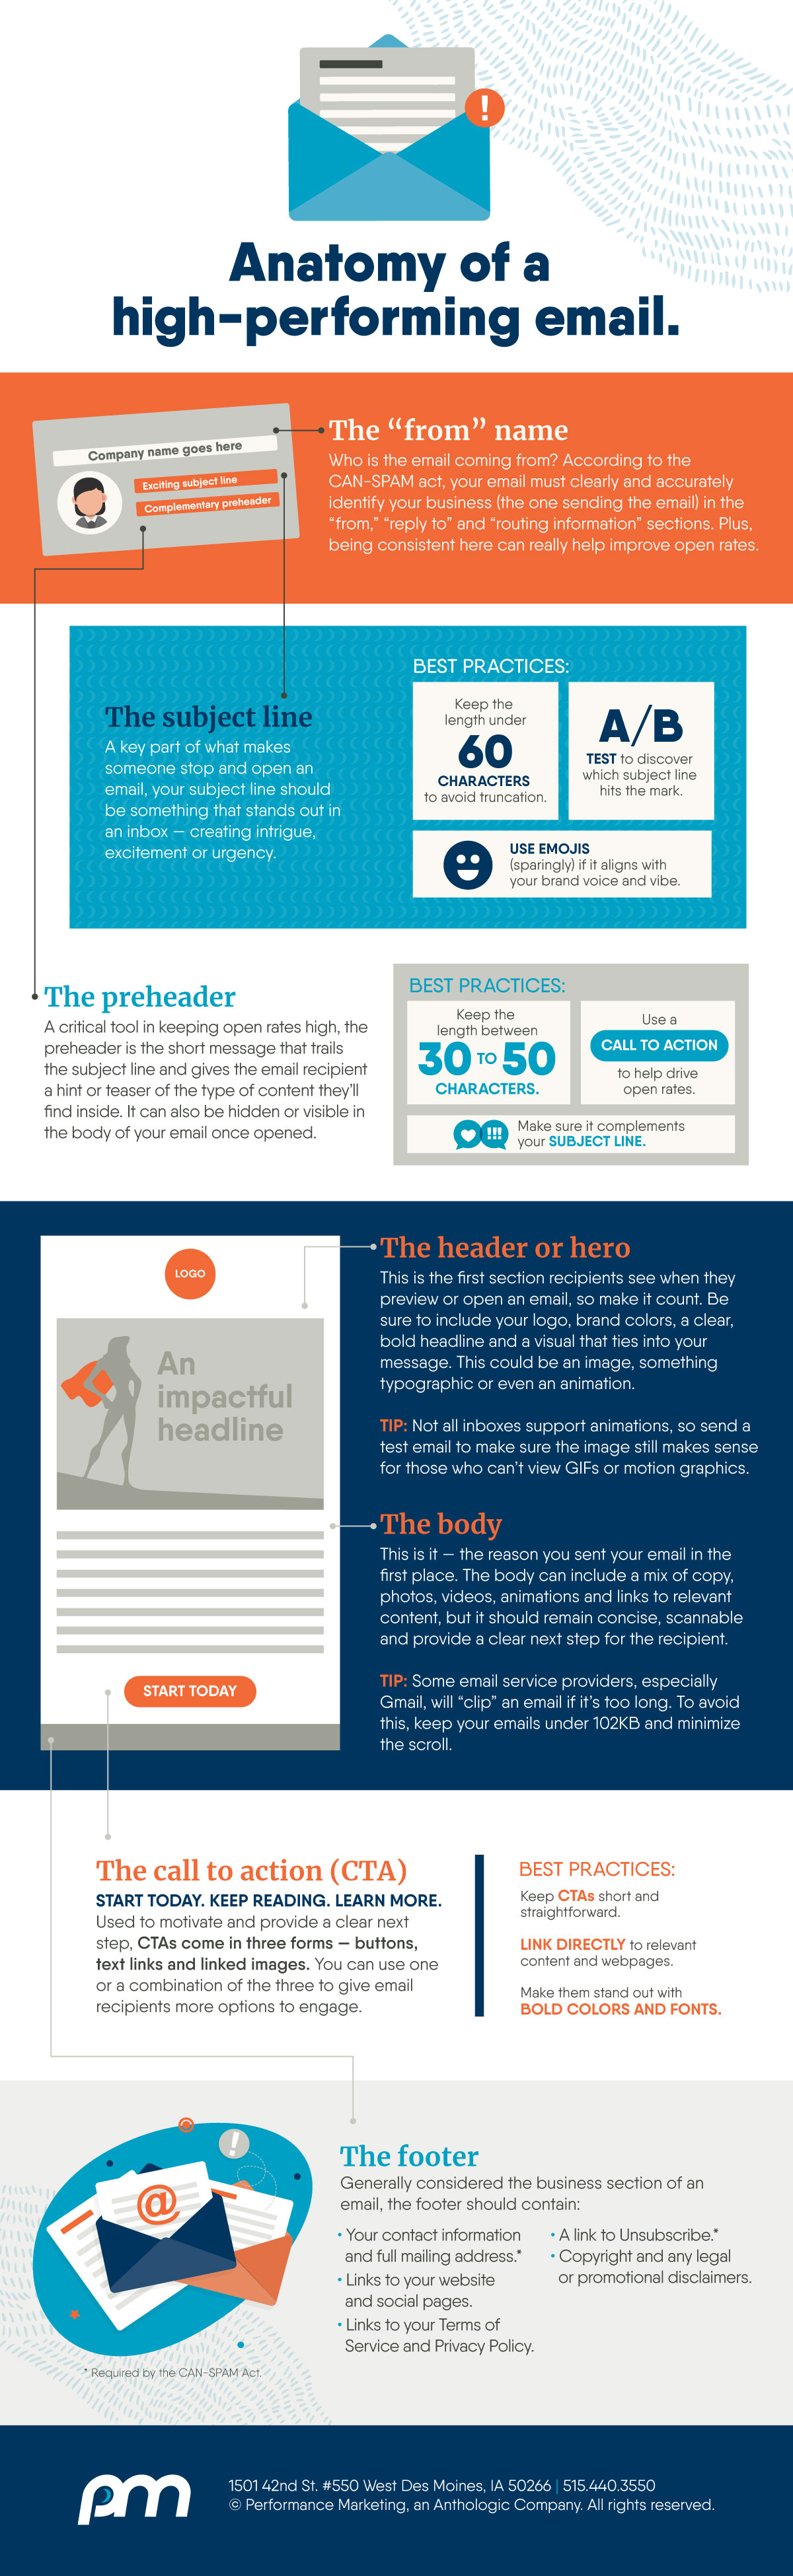 Infographic explaining the anatomy of a high-performing email